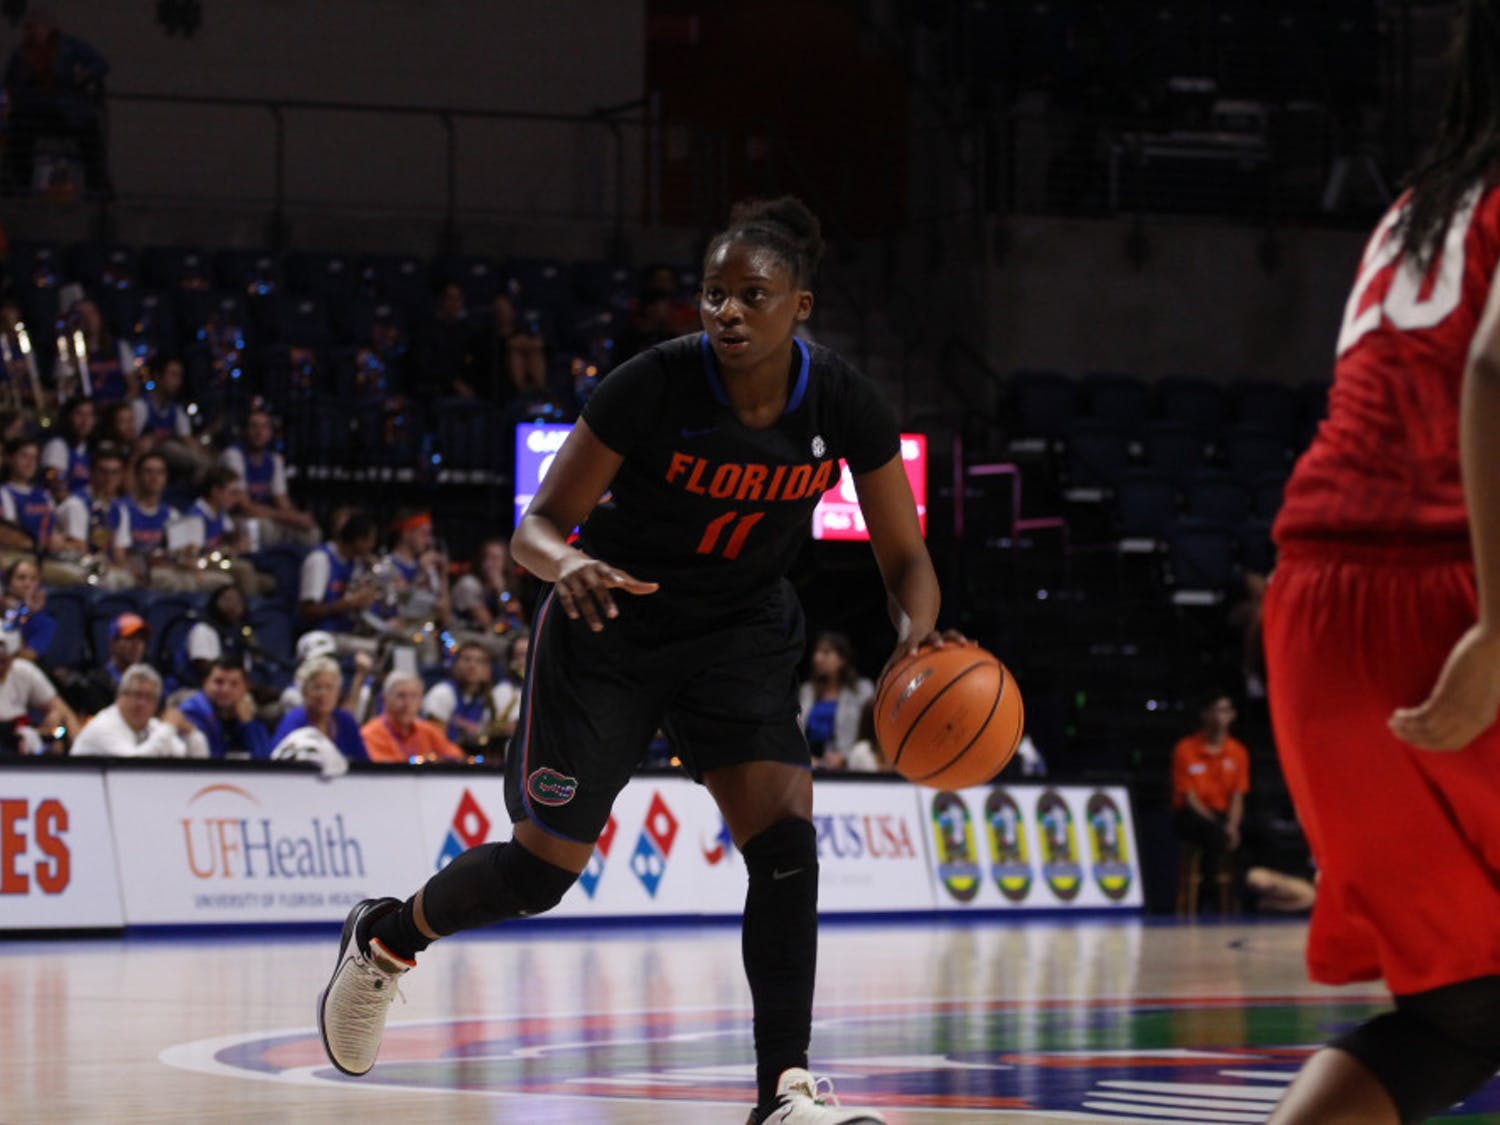 Dyandria Anderson scored 12 points, including the final bucket in regulation, in a double-overtime thriller against Ole Miss.